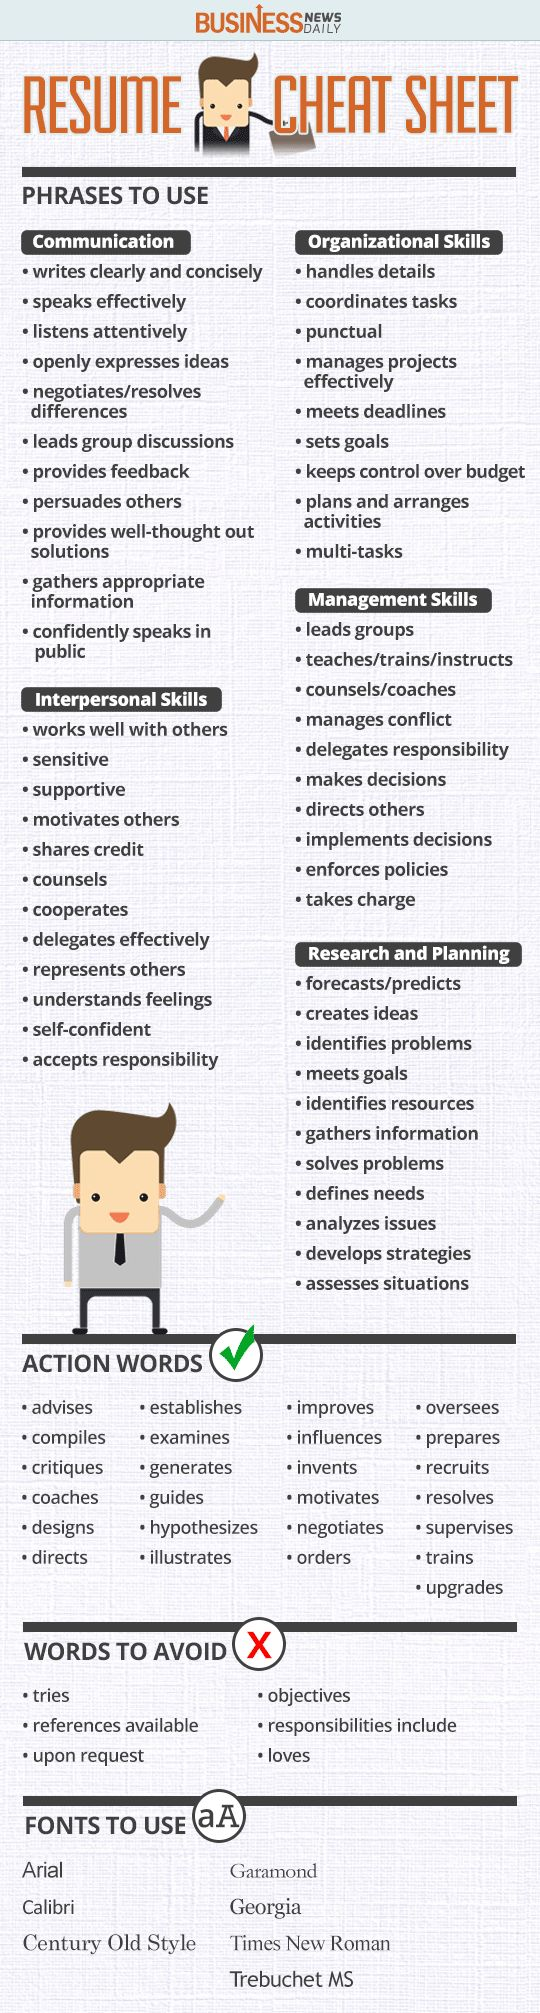 Opposenewapstandardsus  Seductive  Ideas About Resume On Pinterest  Cv Format Resume Cv And  With Extraordinary Resume Cheat Sheet Infographic Andrews Almost Done With A Complete Unit On Employment Which With Archaic Summary In Resume Also Cover Letter Sample For Resume In Addition Executive Resume Writing Service And Medical Billing Resume As Well As Resume Template For College Student Additionally Online Resume Builder Free From Pinterestcom With Opposenewapstandardsus  Extraordinary  Ideas About Resume On Pinterest  Cv Format Resume Cv And  With Archaic Resume Cheat Sheet Infographic Andrews Almost Done With A Complete Unit On Employment Which And Seductive Summary In Resume Also Cover Letter Sample For Resume In Addition Executive Resume Writing Service From Pinterestcom